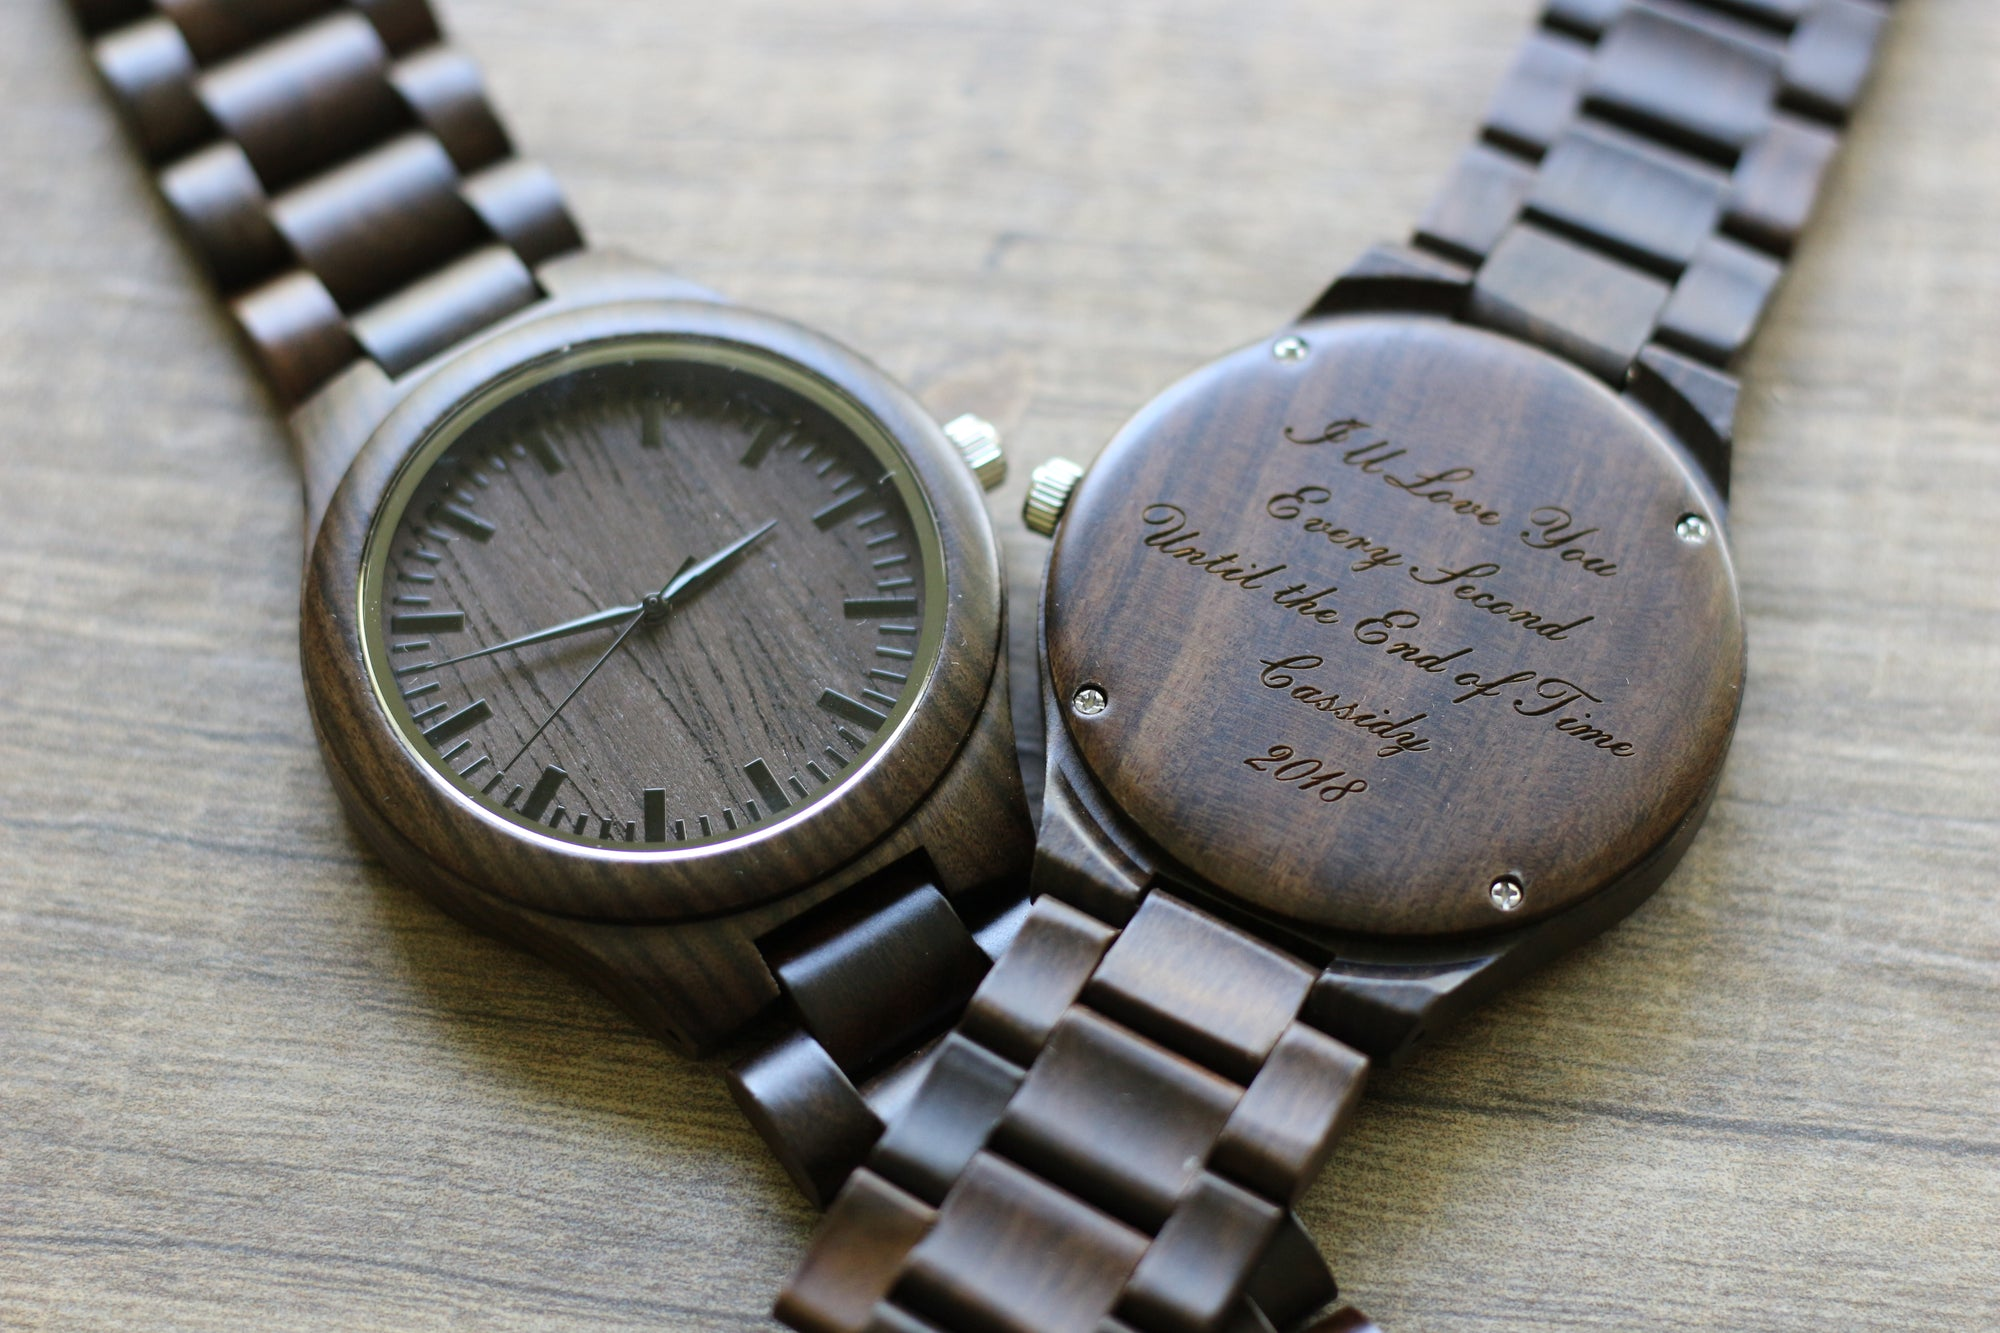 also tmbr com watch pin made quality mensstyle friendly maple and watches s rosewood from custom wood for high eco available at or men tmbrs handcrafted customized sandalwood gifts